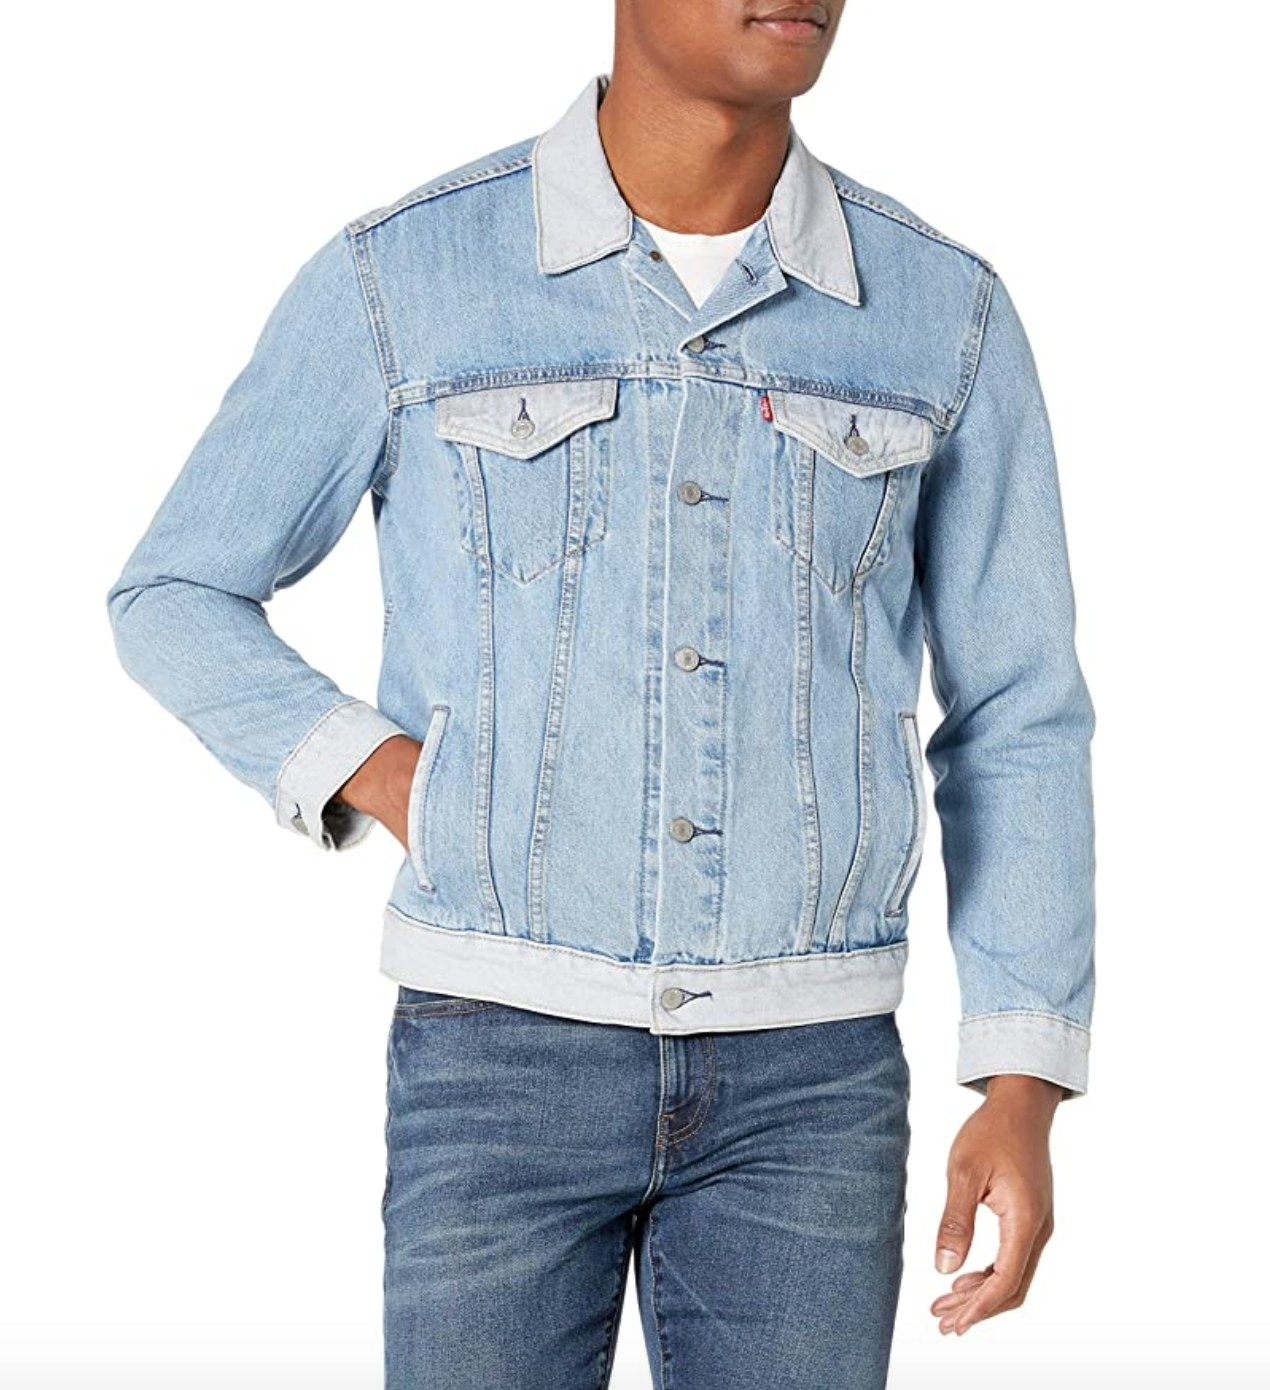 The Levi's denim jacket in faded light blue color